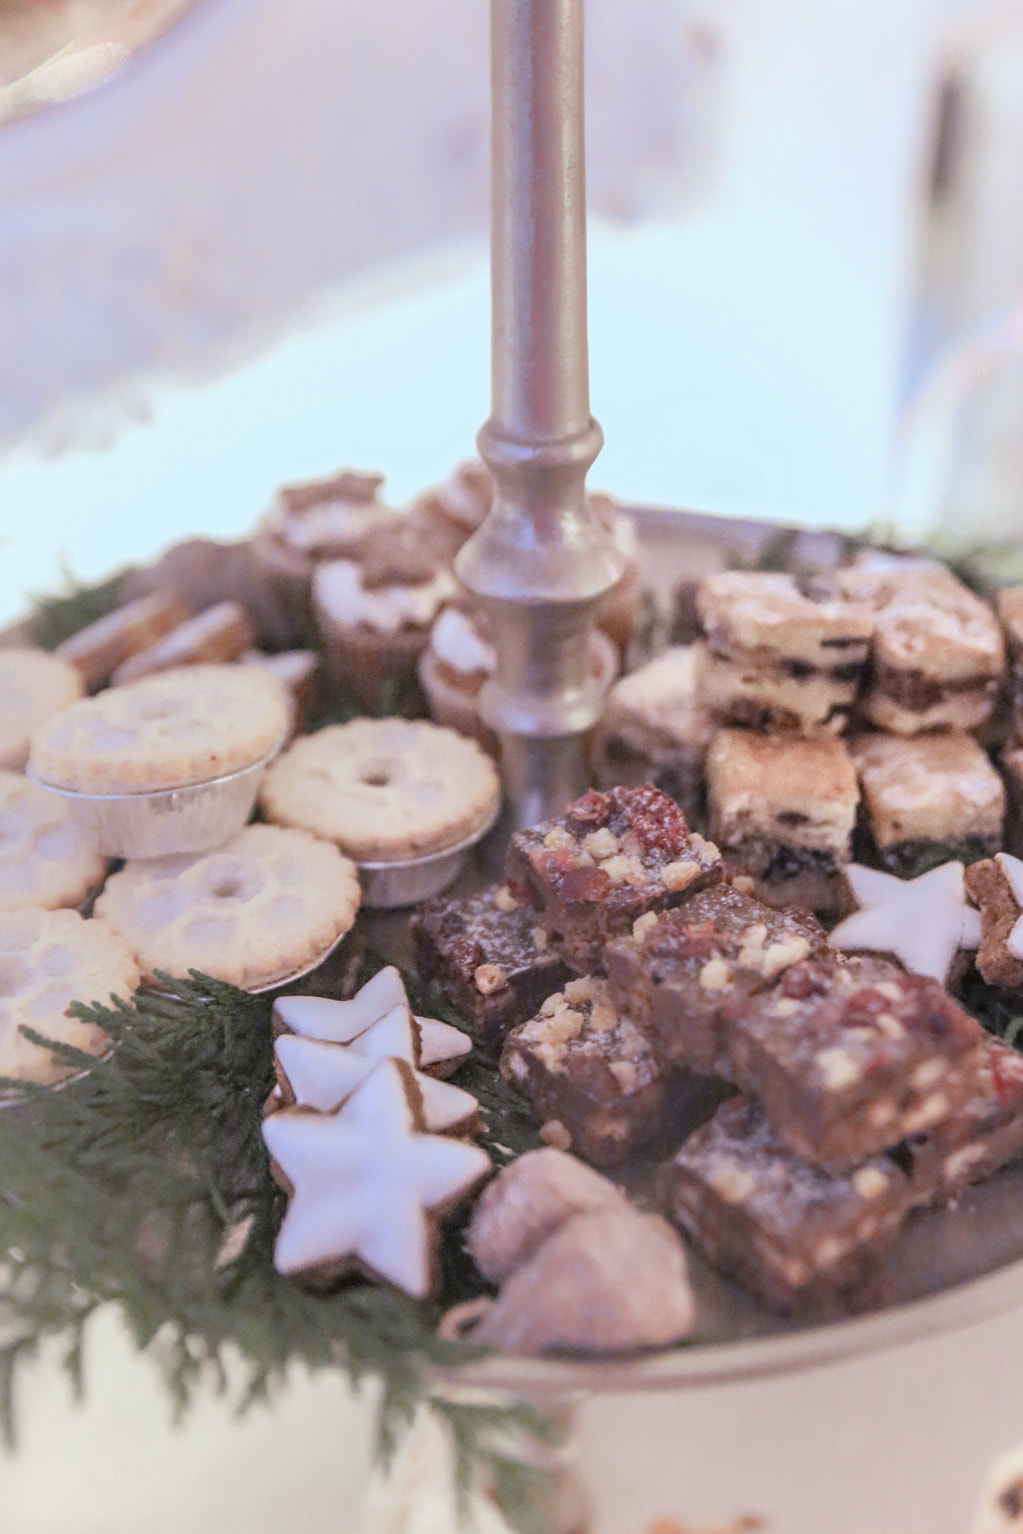 Festive Afternoon Tea at Home by The Belle Blog